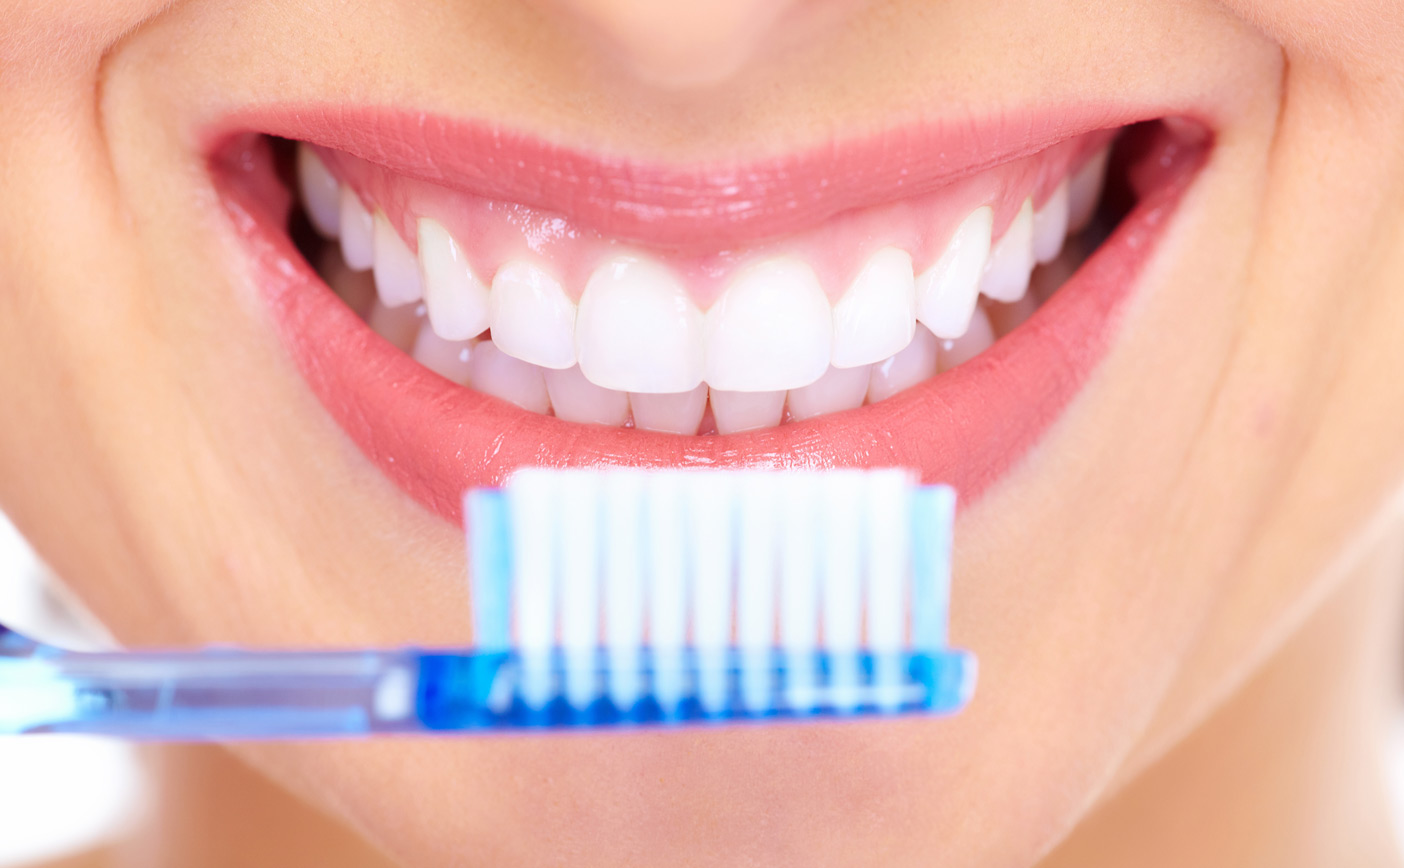 Did you know that the most common colour of toothbrush is blue?